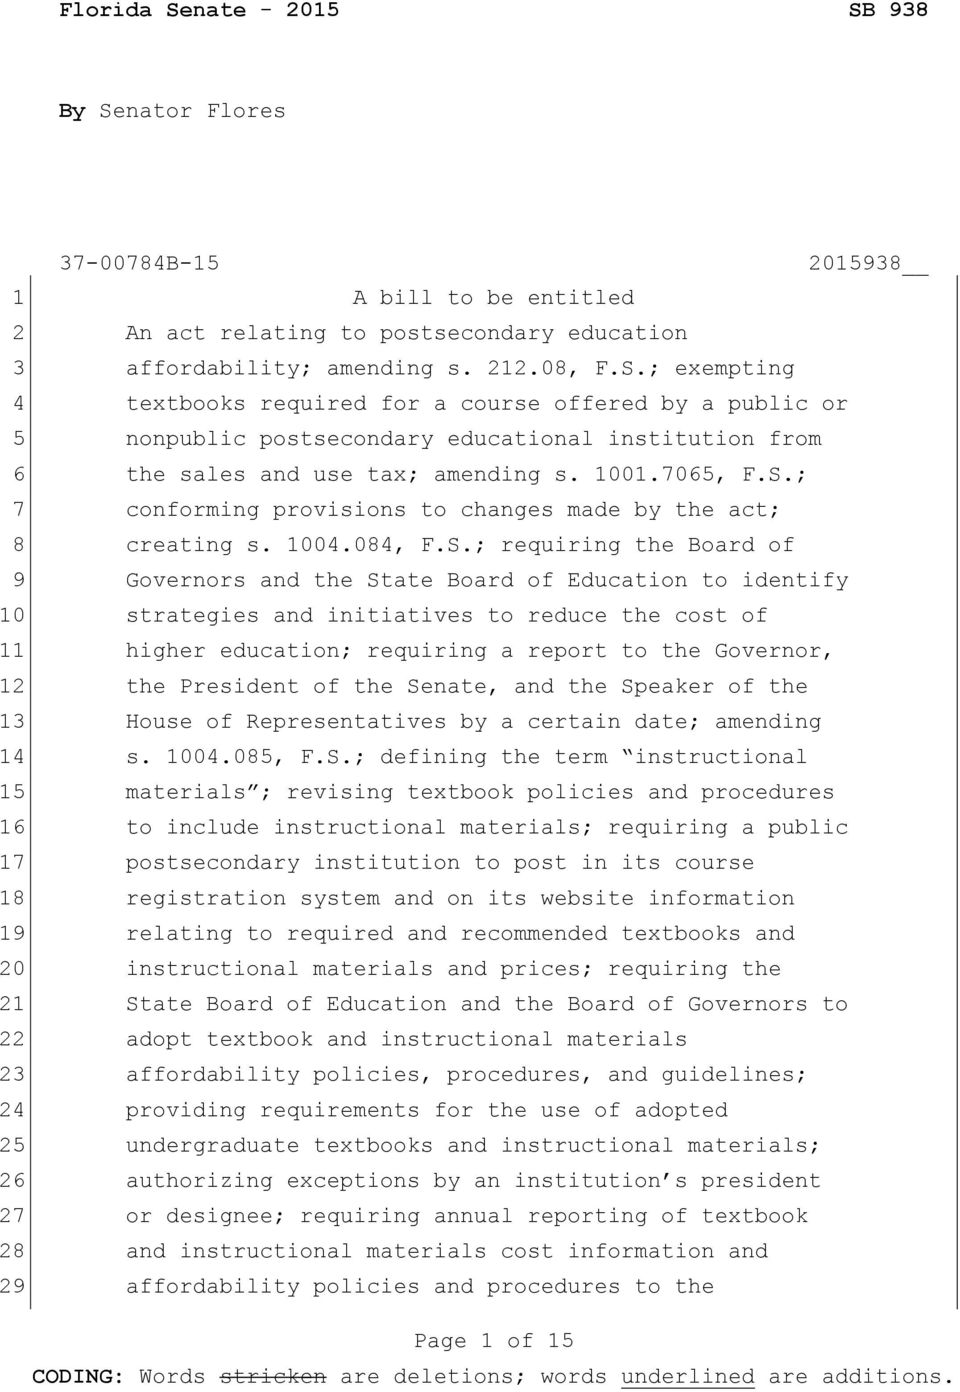 ; conforming provisions to changes made by the act; creating s. 1004.084, F.S.